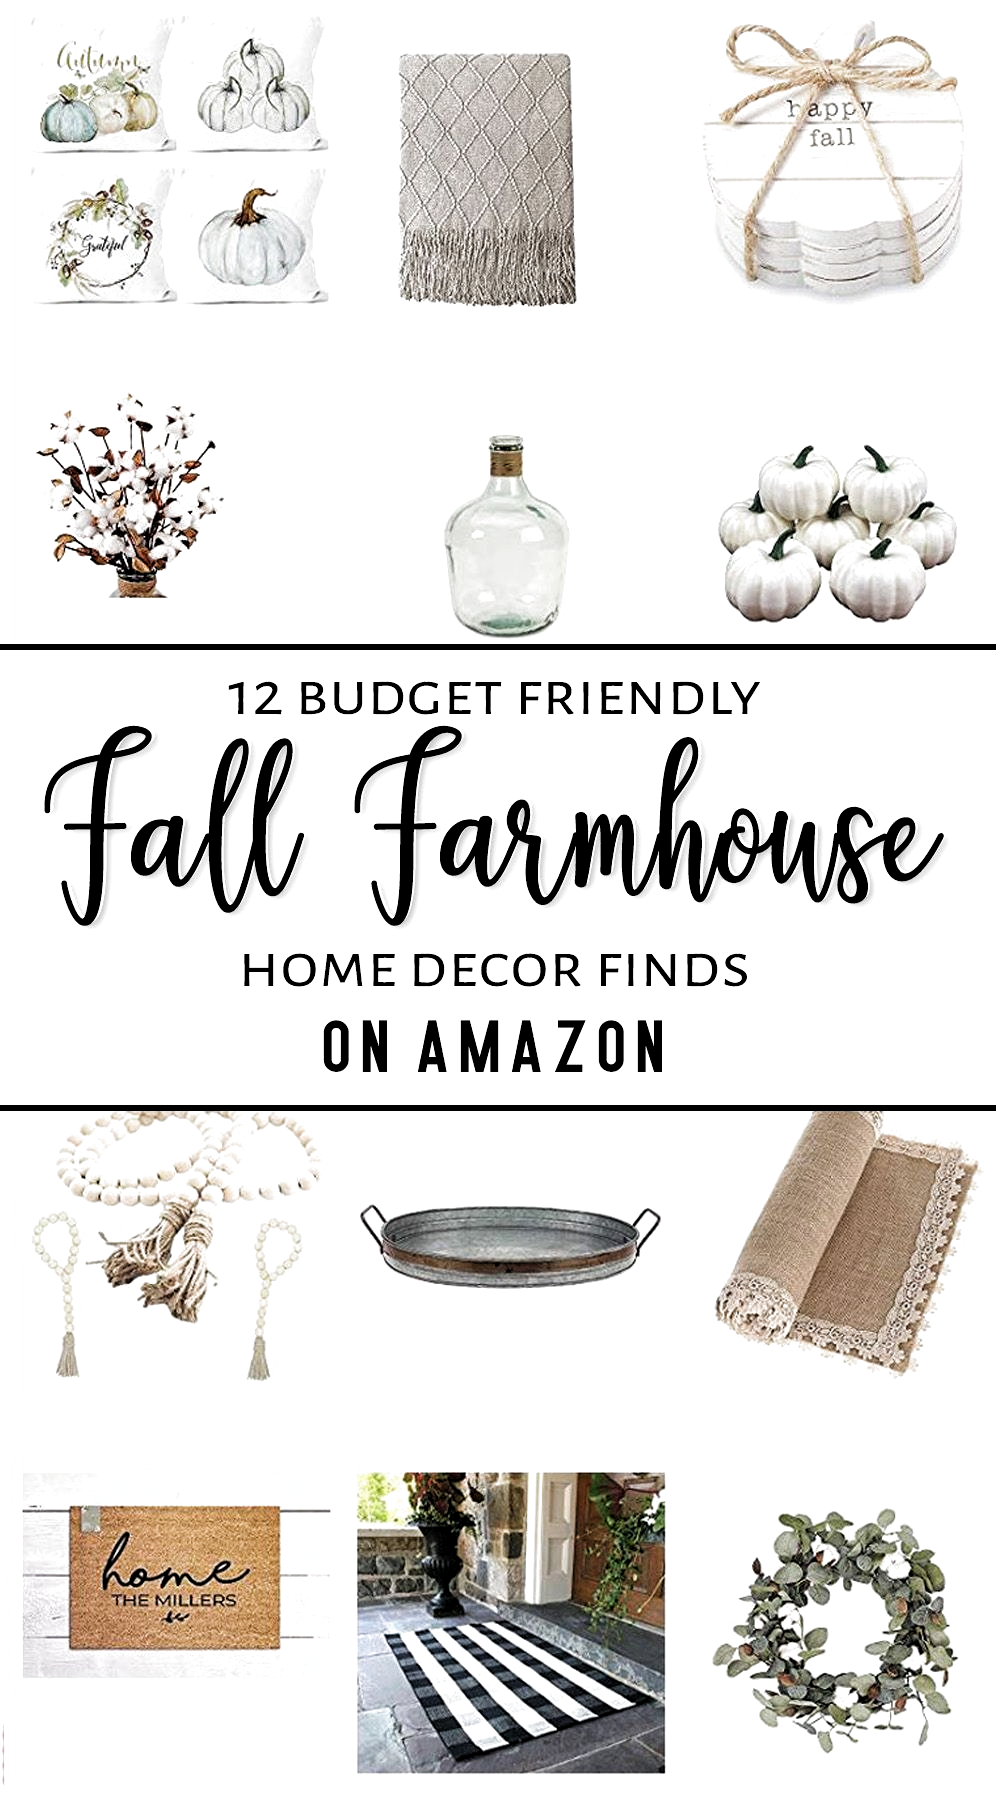 12 Affordable fall farmhouse home decor finds on Amazon! This is a dreamy collection of neutral whites, greens, and greige hues that will be sure to make your home warm & cozy for the fall season! —————————- #fallfarmhousedecor #falldecor #warm